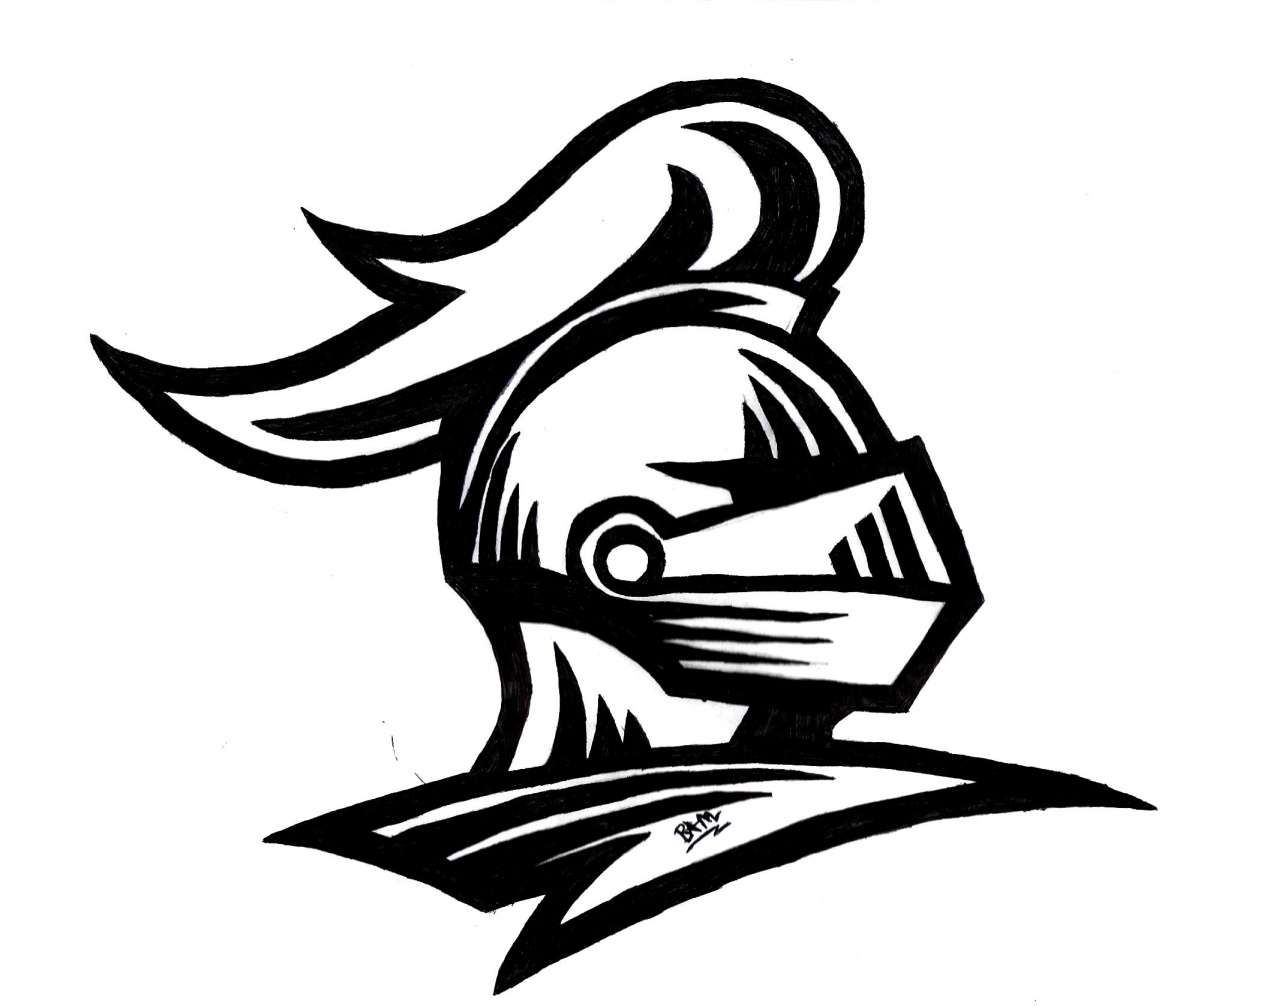 how to draw a knight helmet step by step predator helmet drawing at getdrawings free download draw step step by knight a how helmet to